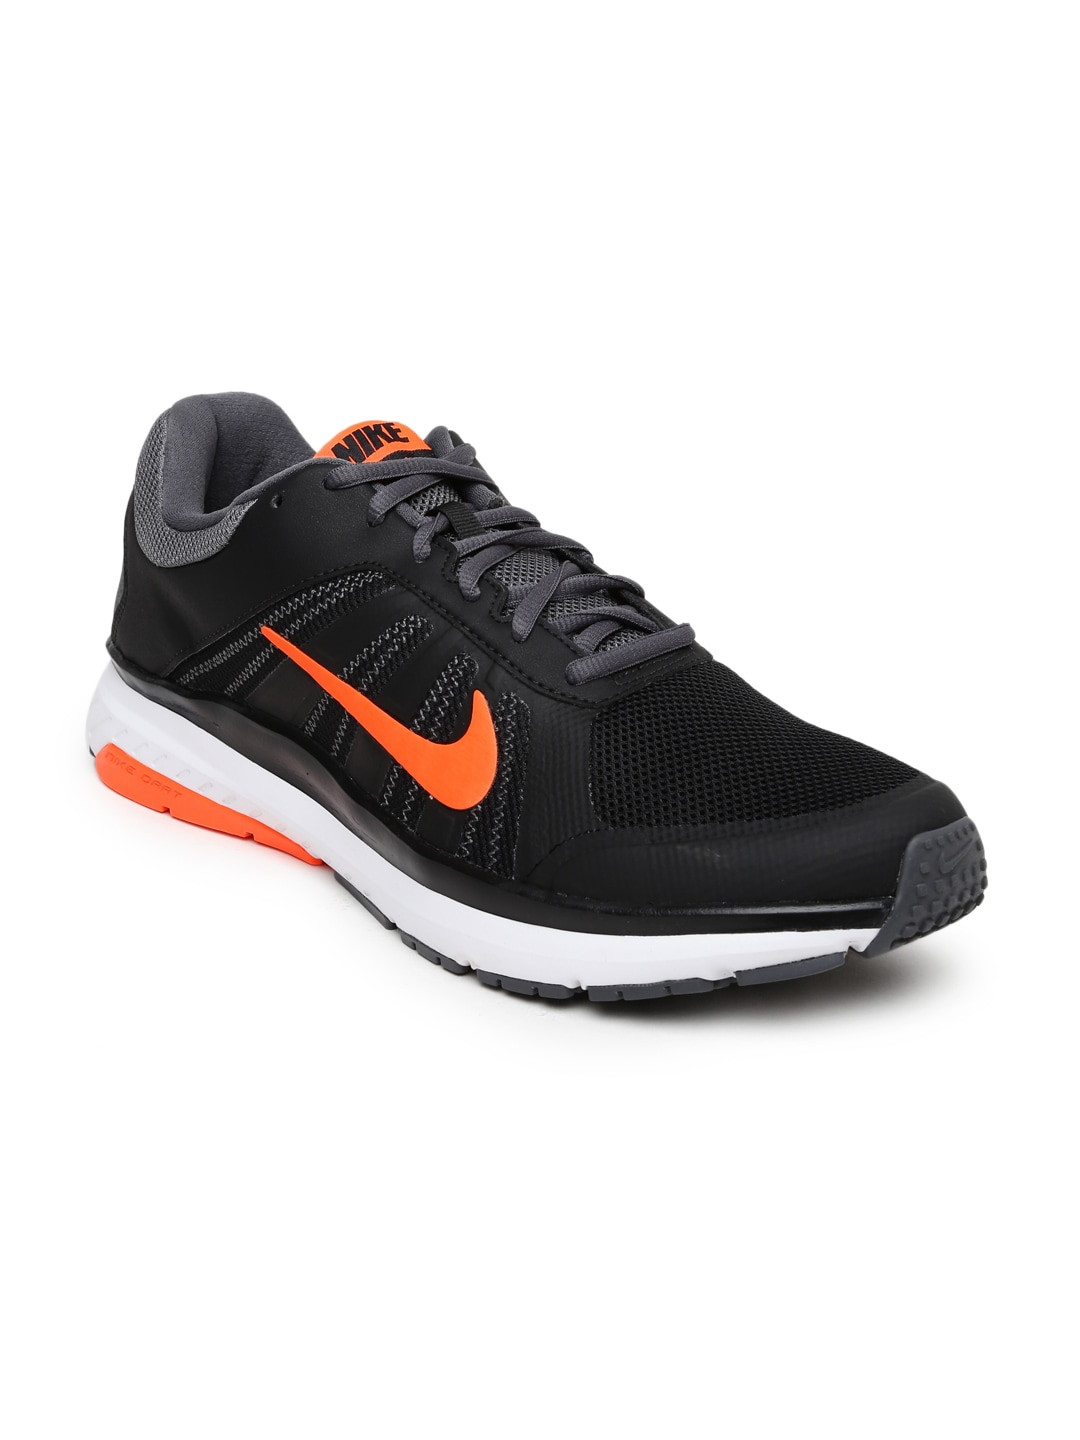 huge discount 2b940 4ded6 Nike White Shoes Men - Buy Nike White Shoes Men online in India